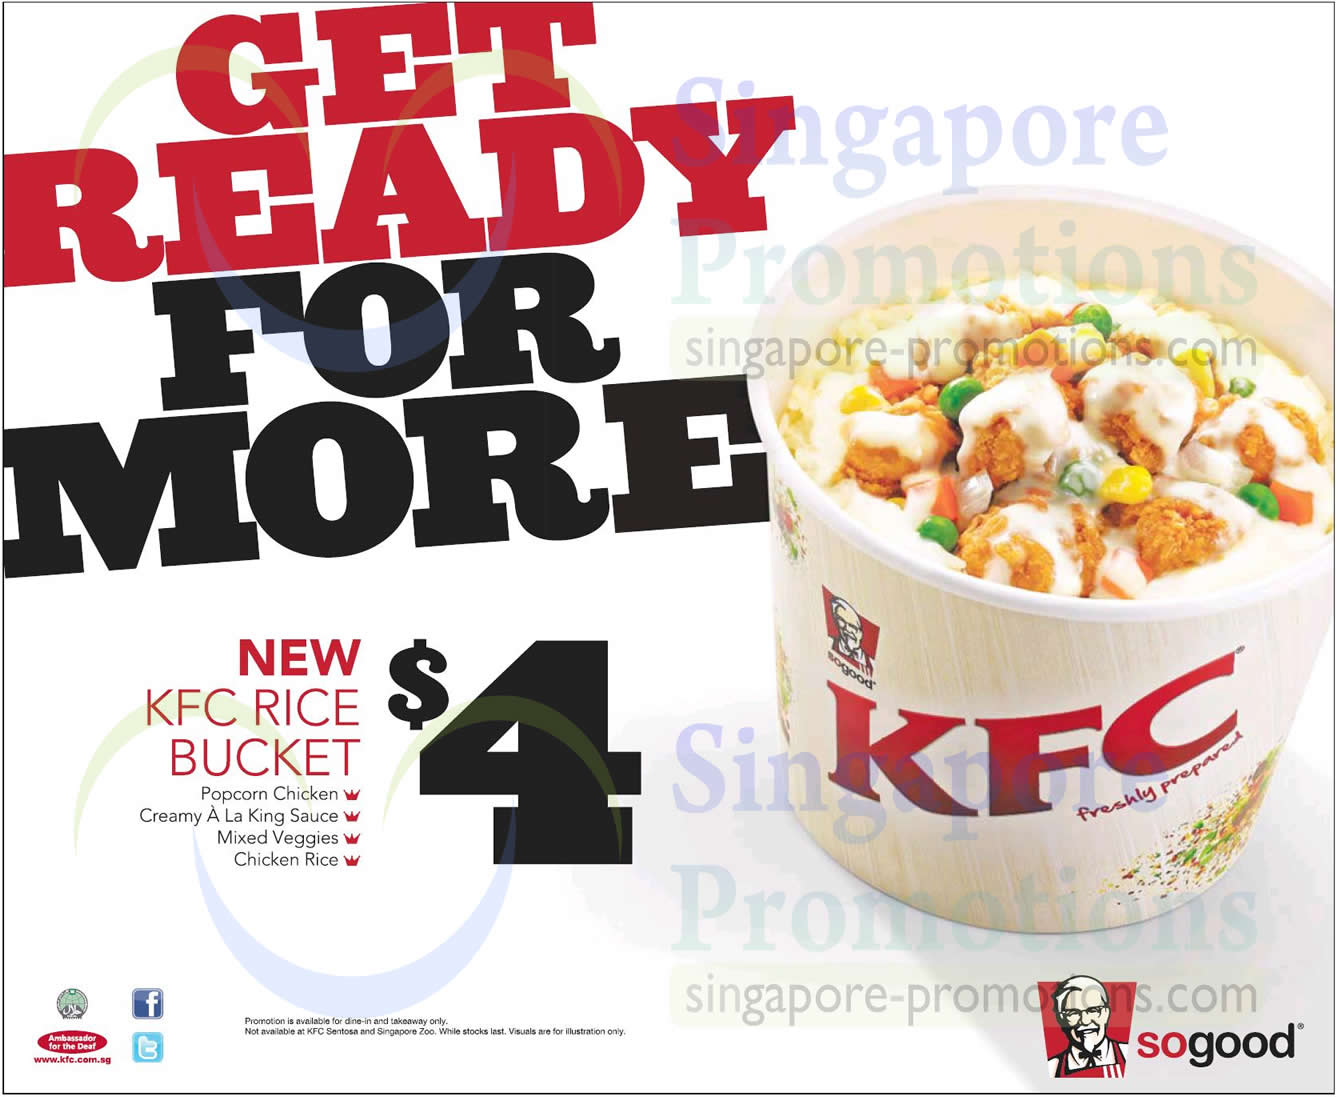 KFC NEW $4 Rice Bucket (Dine-In & Takeaway) 10 Feb 2014